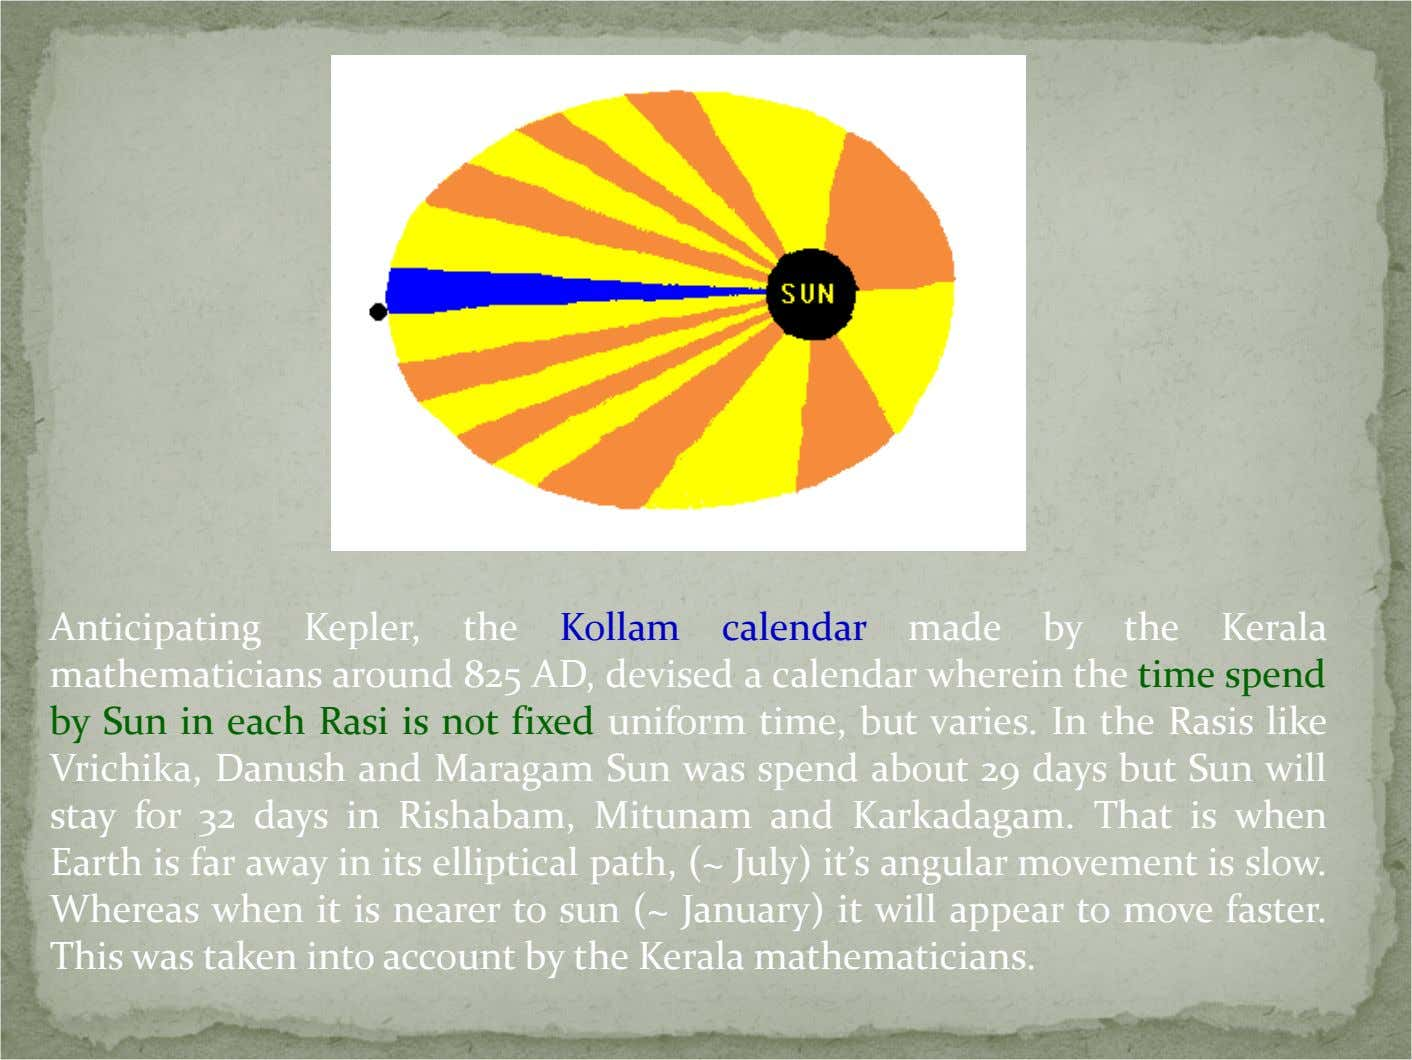 Anticipating Kepler, the Kollam calendar made by the Kerala mathematicians around 825 AD, devised a